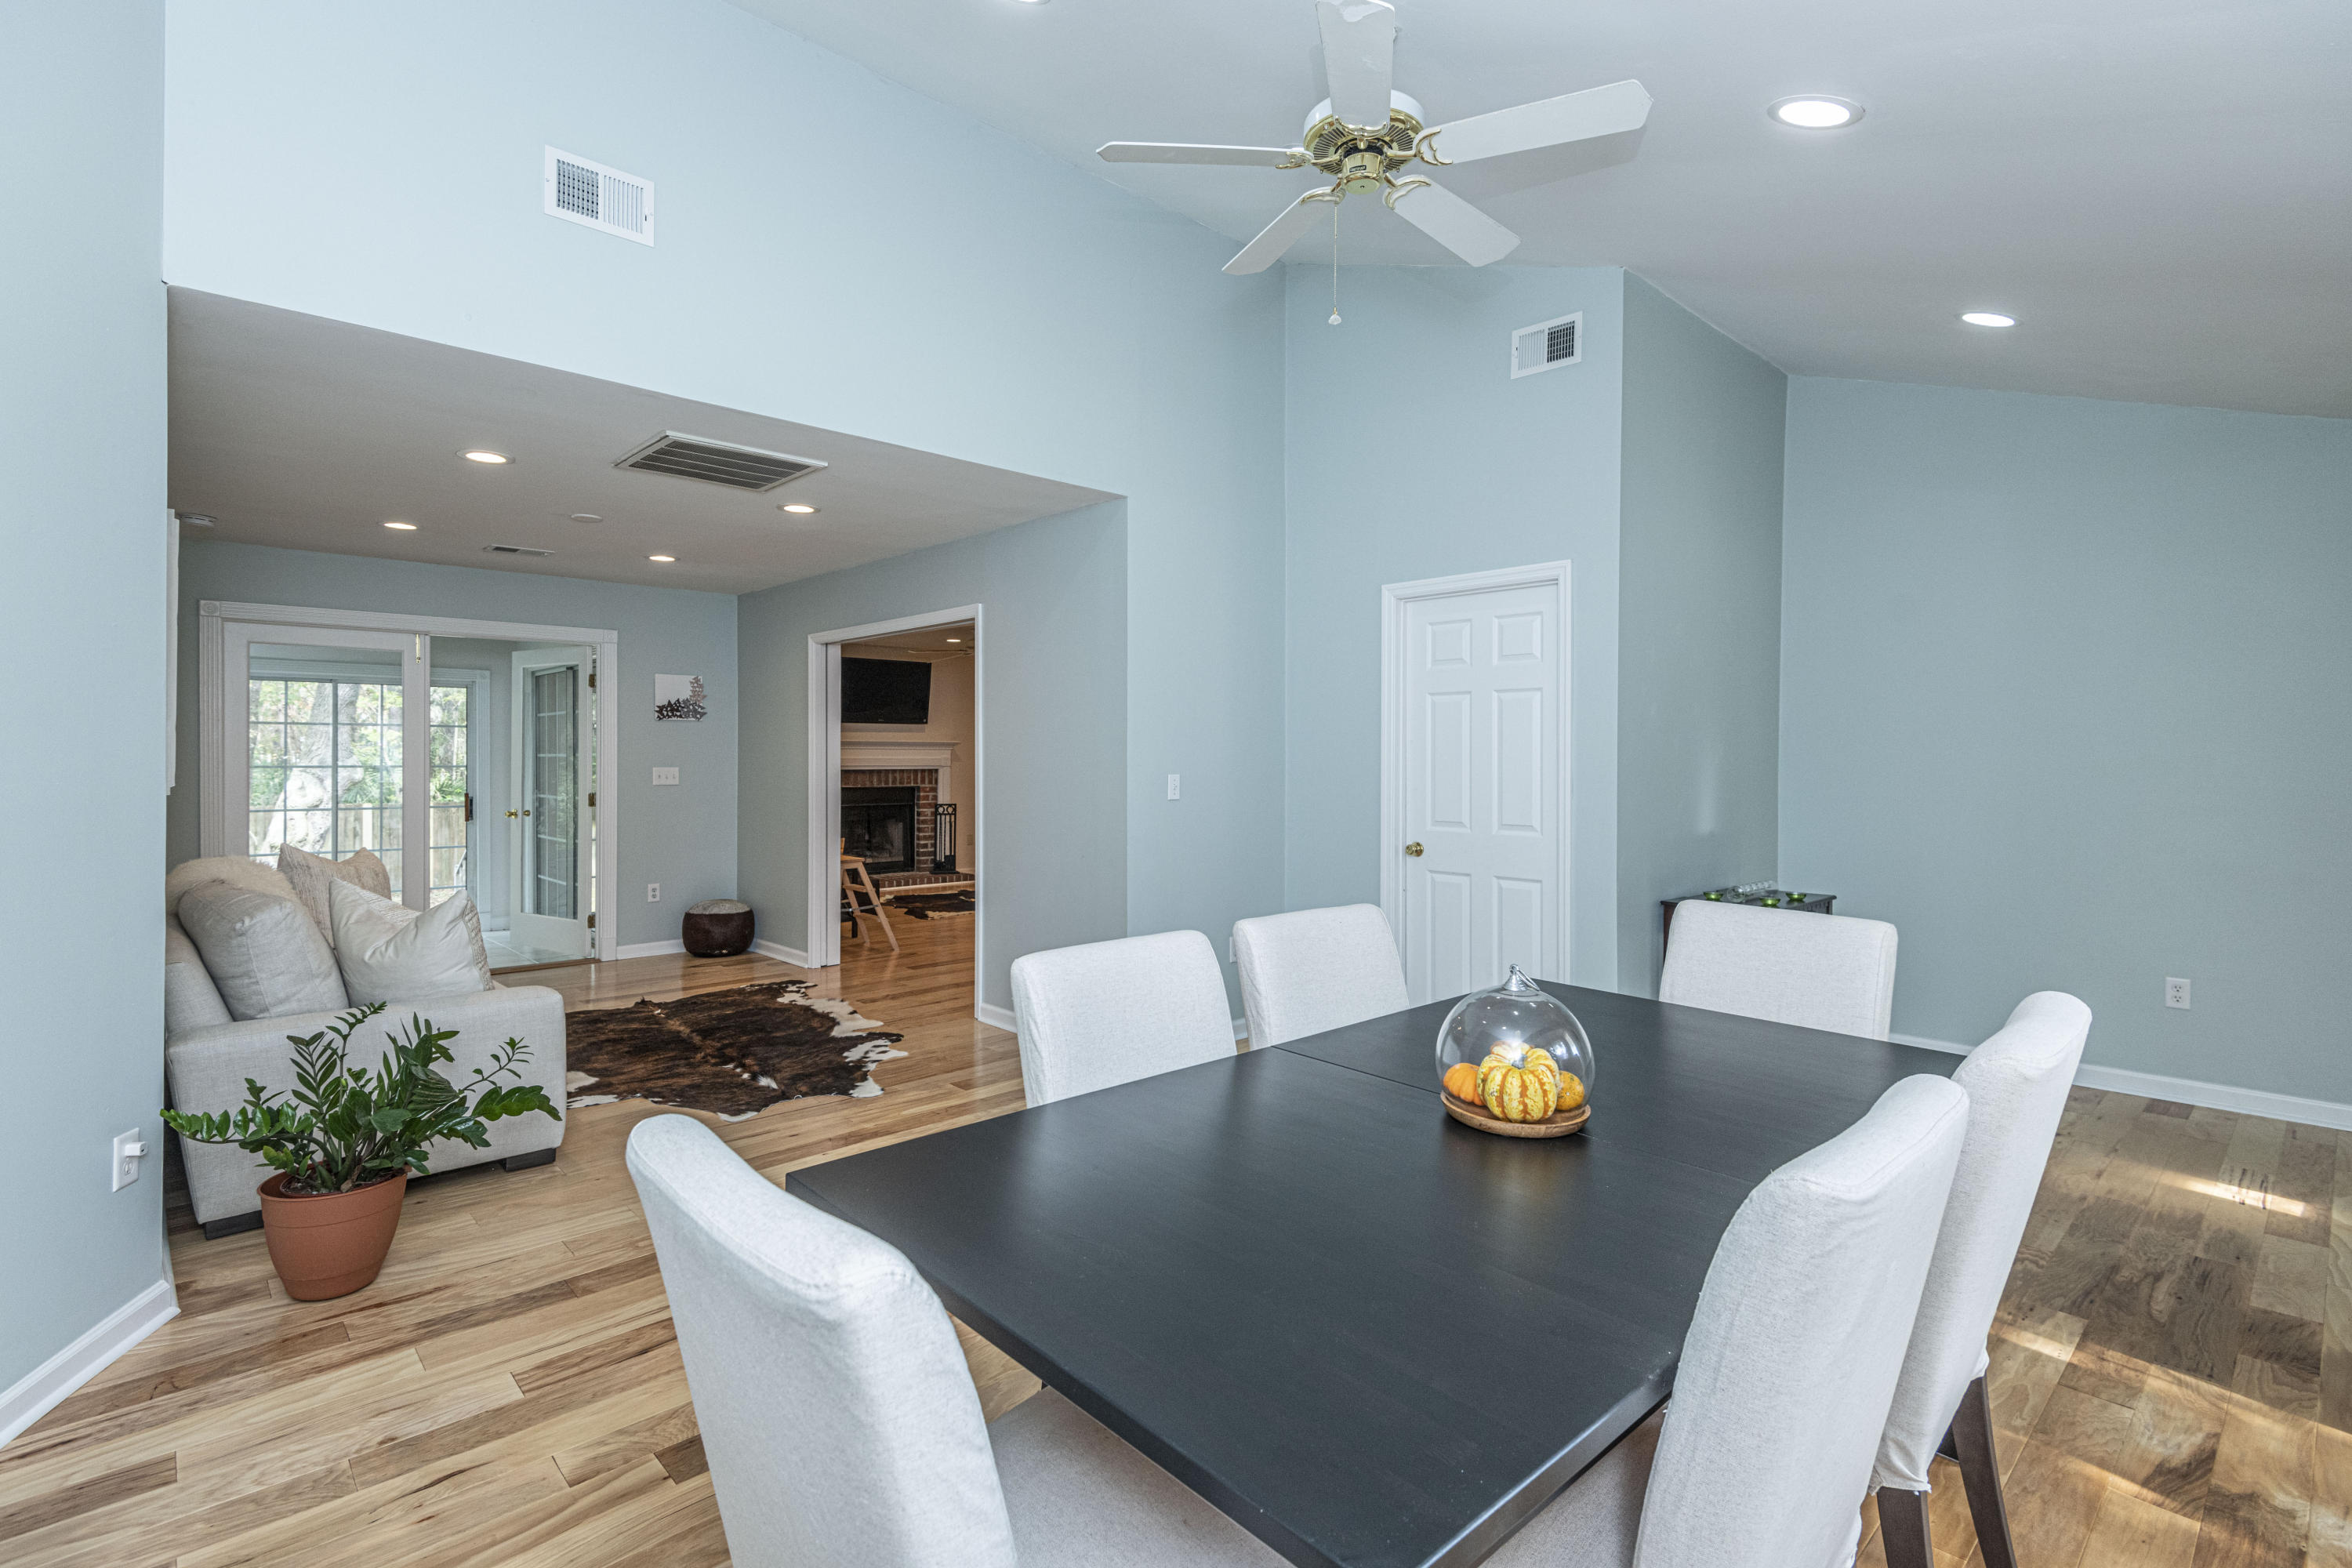 Coopers Pointe Homes For Sale - 1582 Hatteras Sound, Mount Pleasant, SC - 12